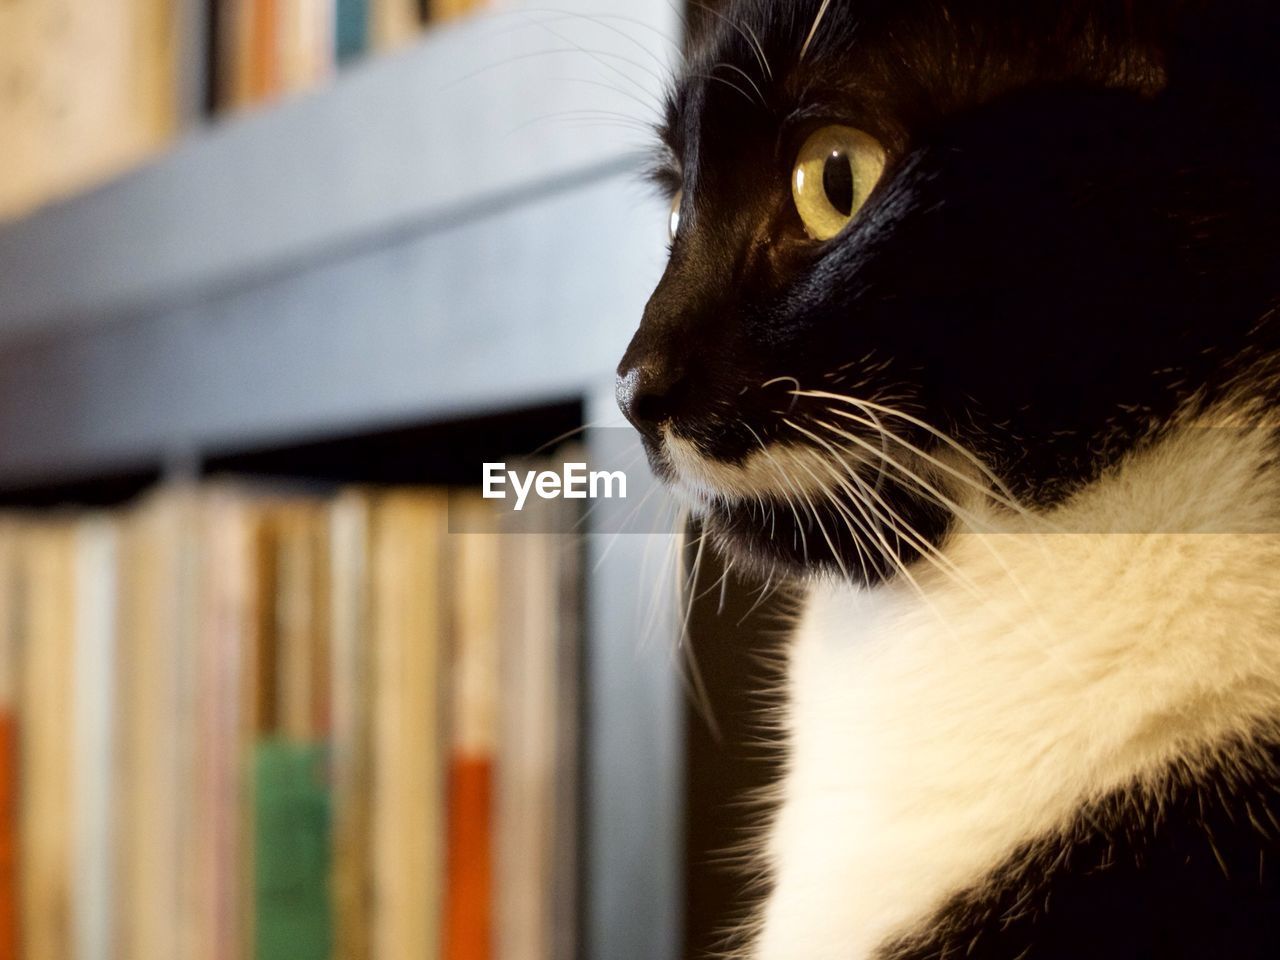 domestic, pets, mammal, domestic animals, cat, feline, animal themes, animal, one animal, domestic cat, vertebrate, whisker, indoors, close-up, no people, looking, looking away, focus on foreground, book, animal body part, animal head